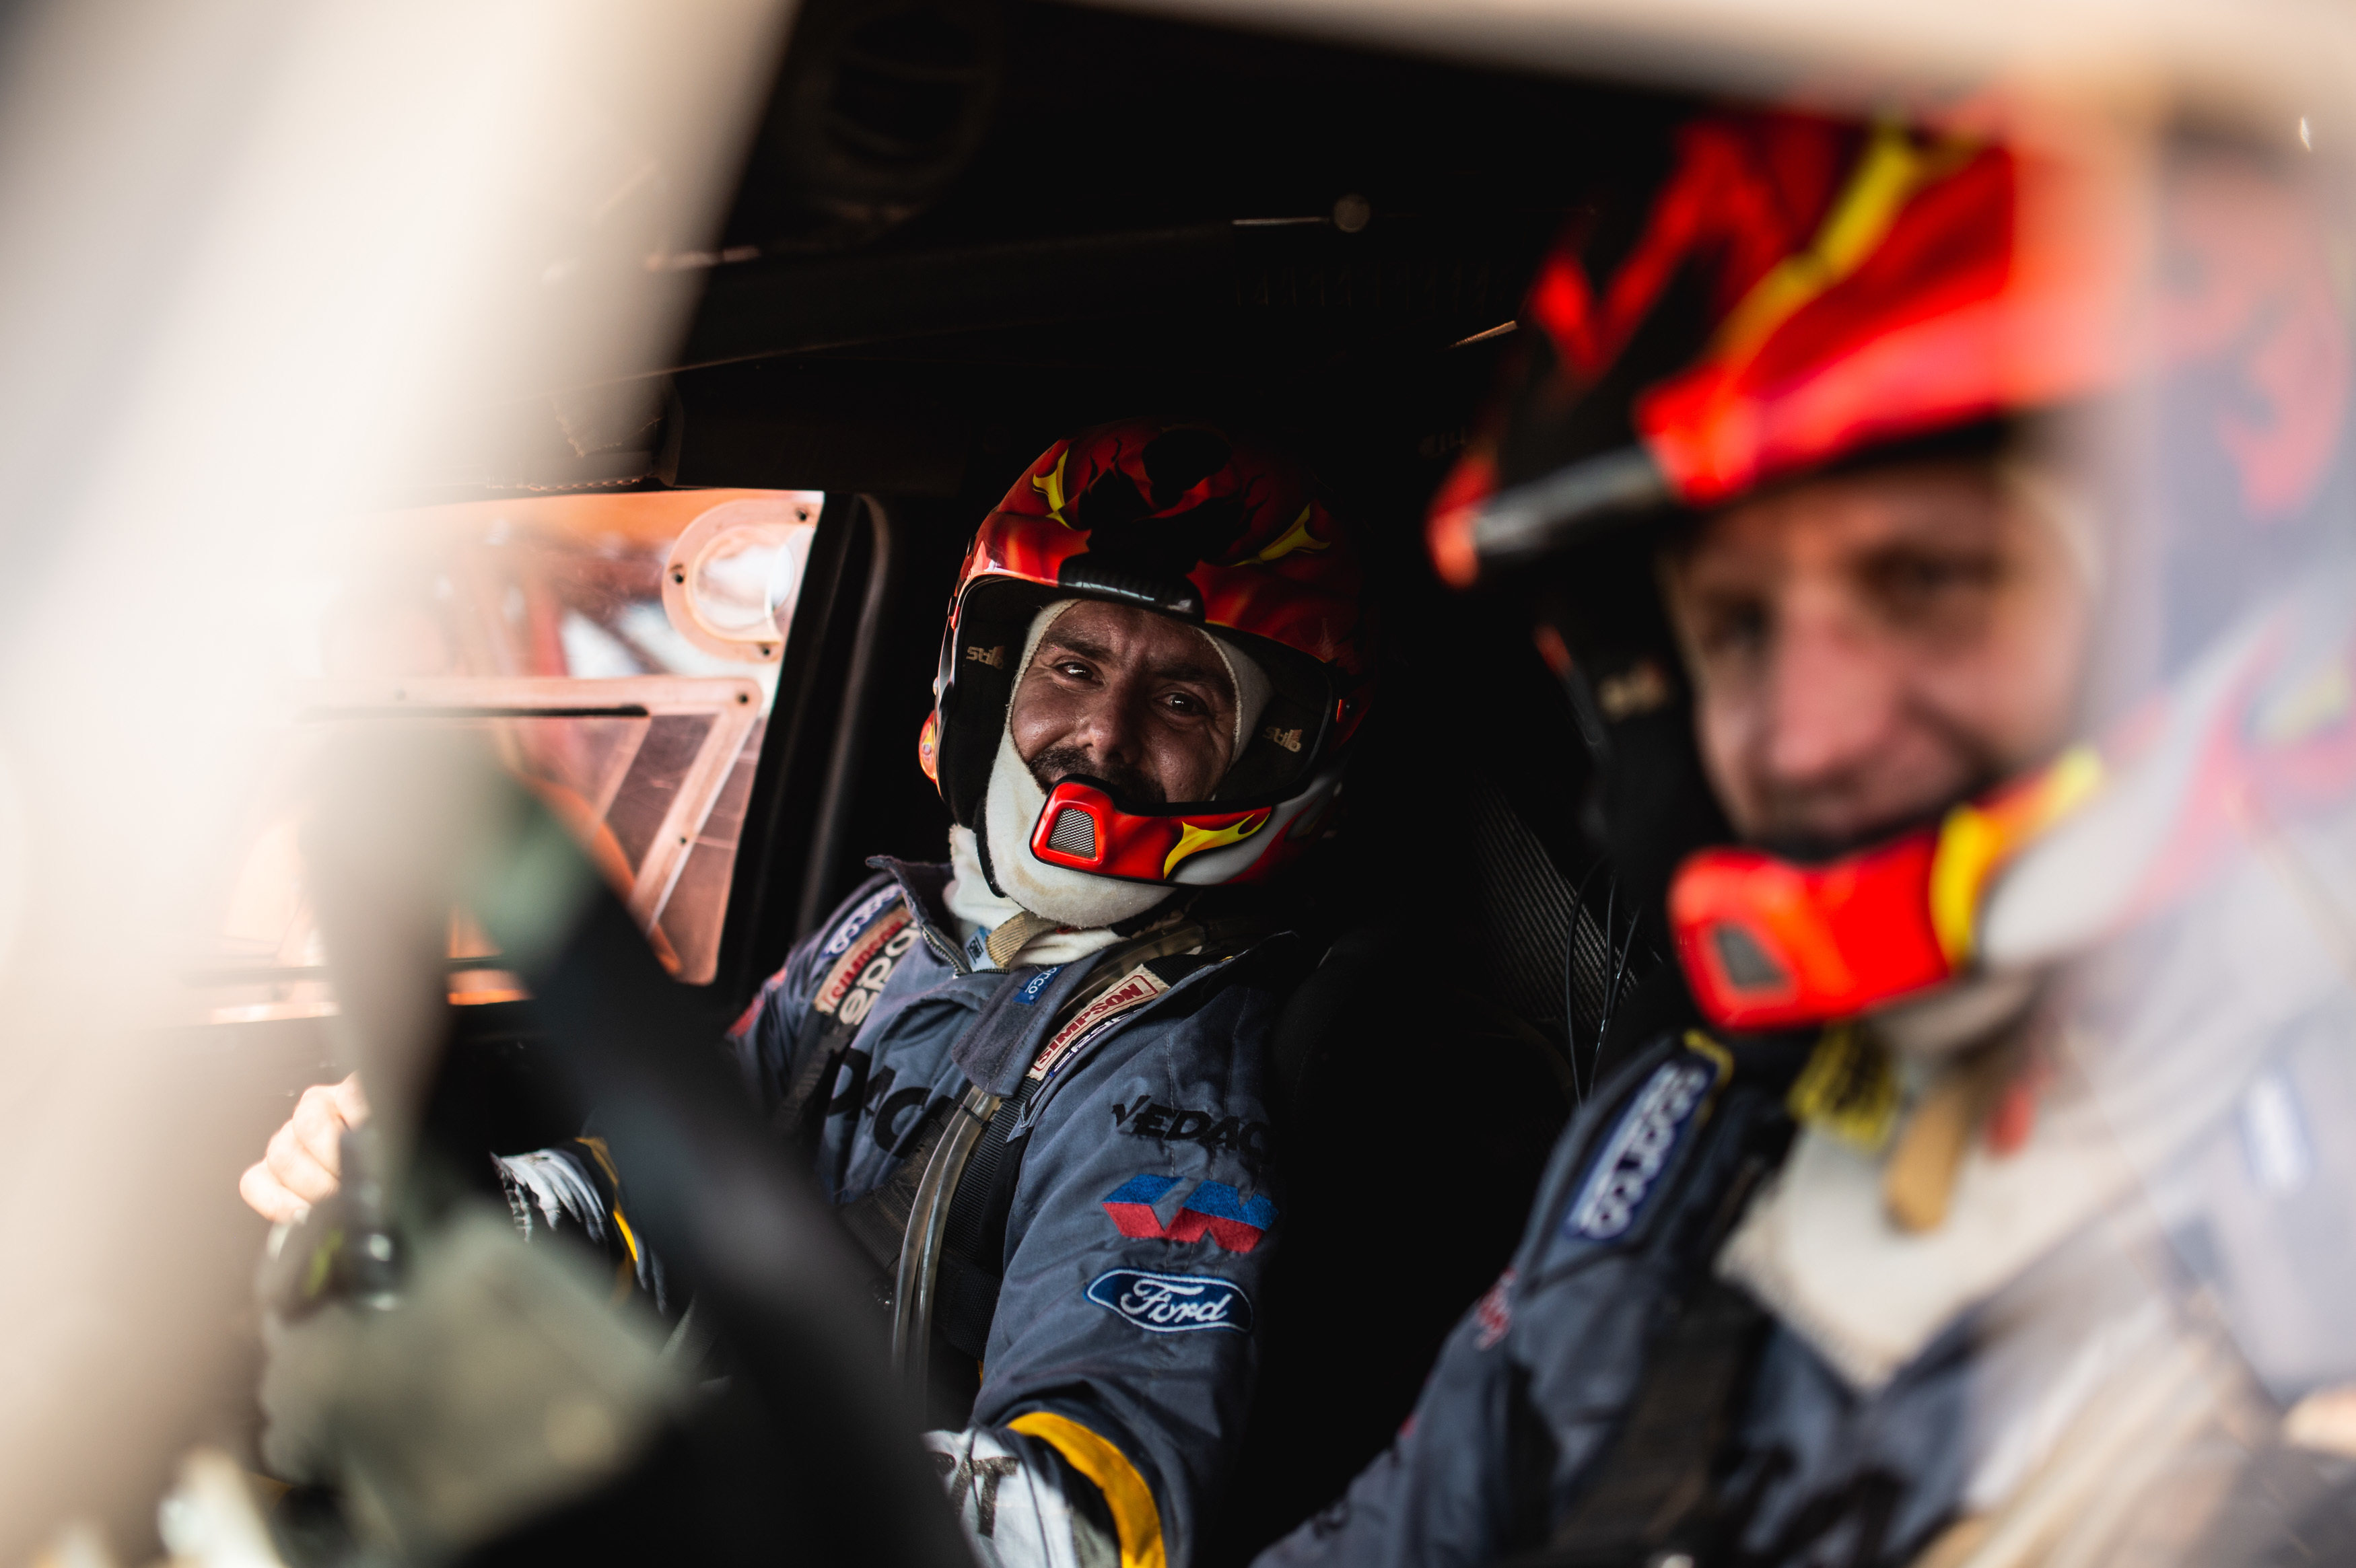 X Rally Team to begin preparation for the 2019 Dakar